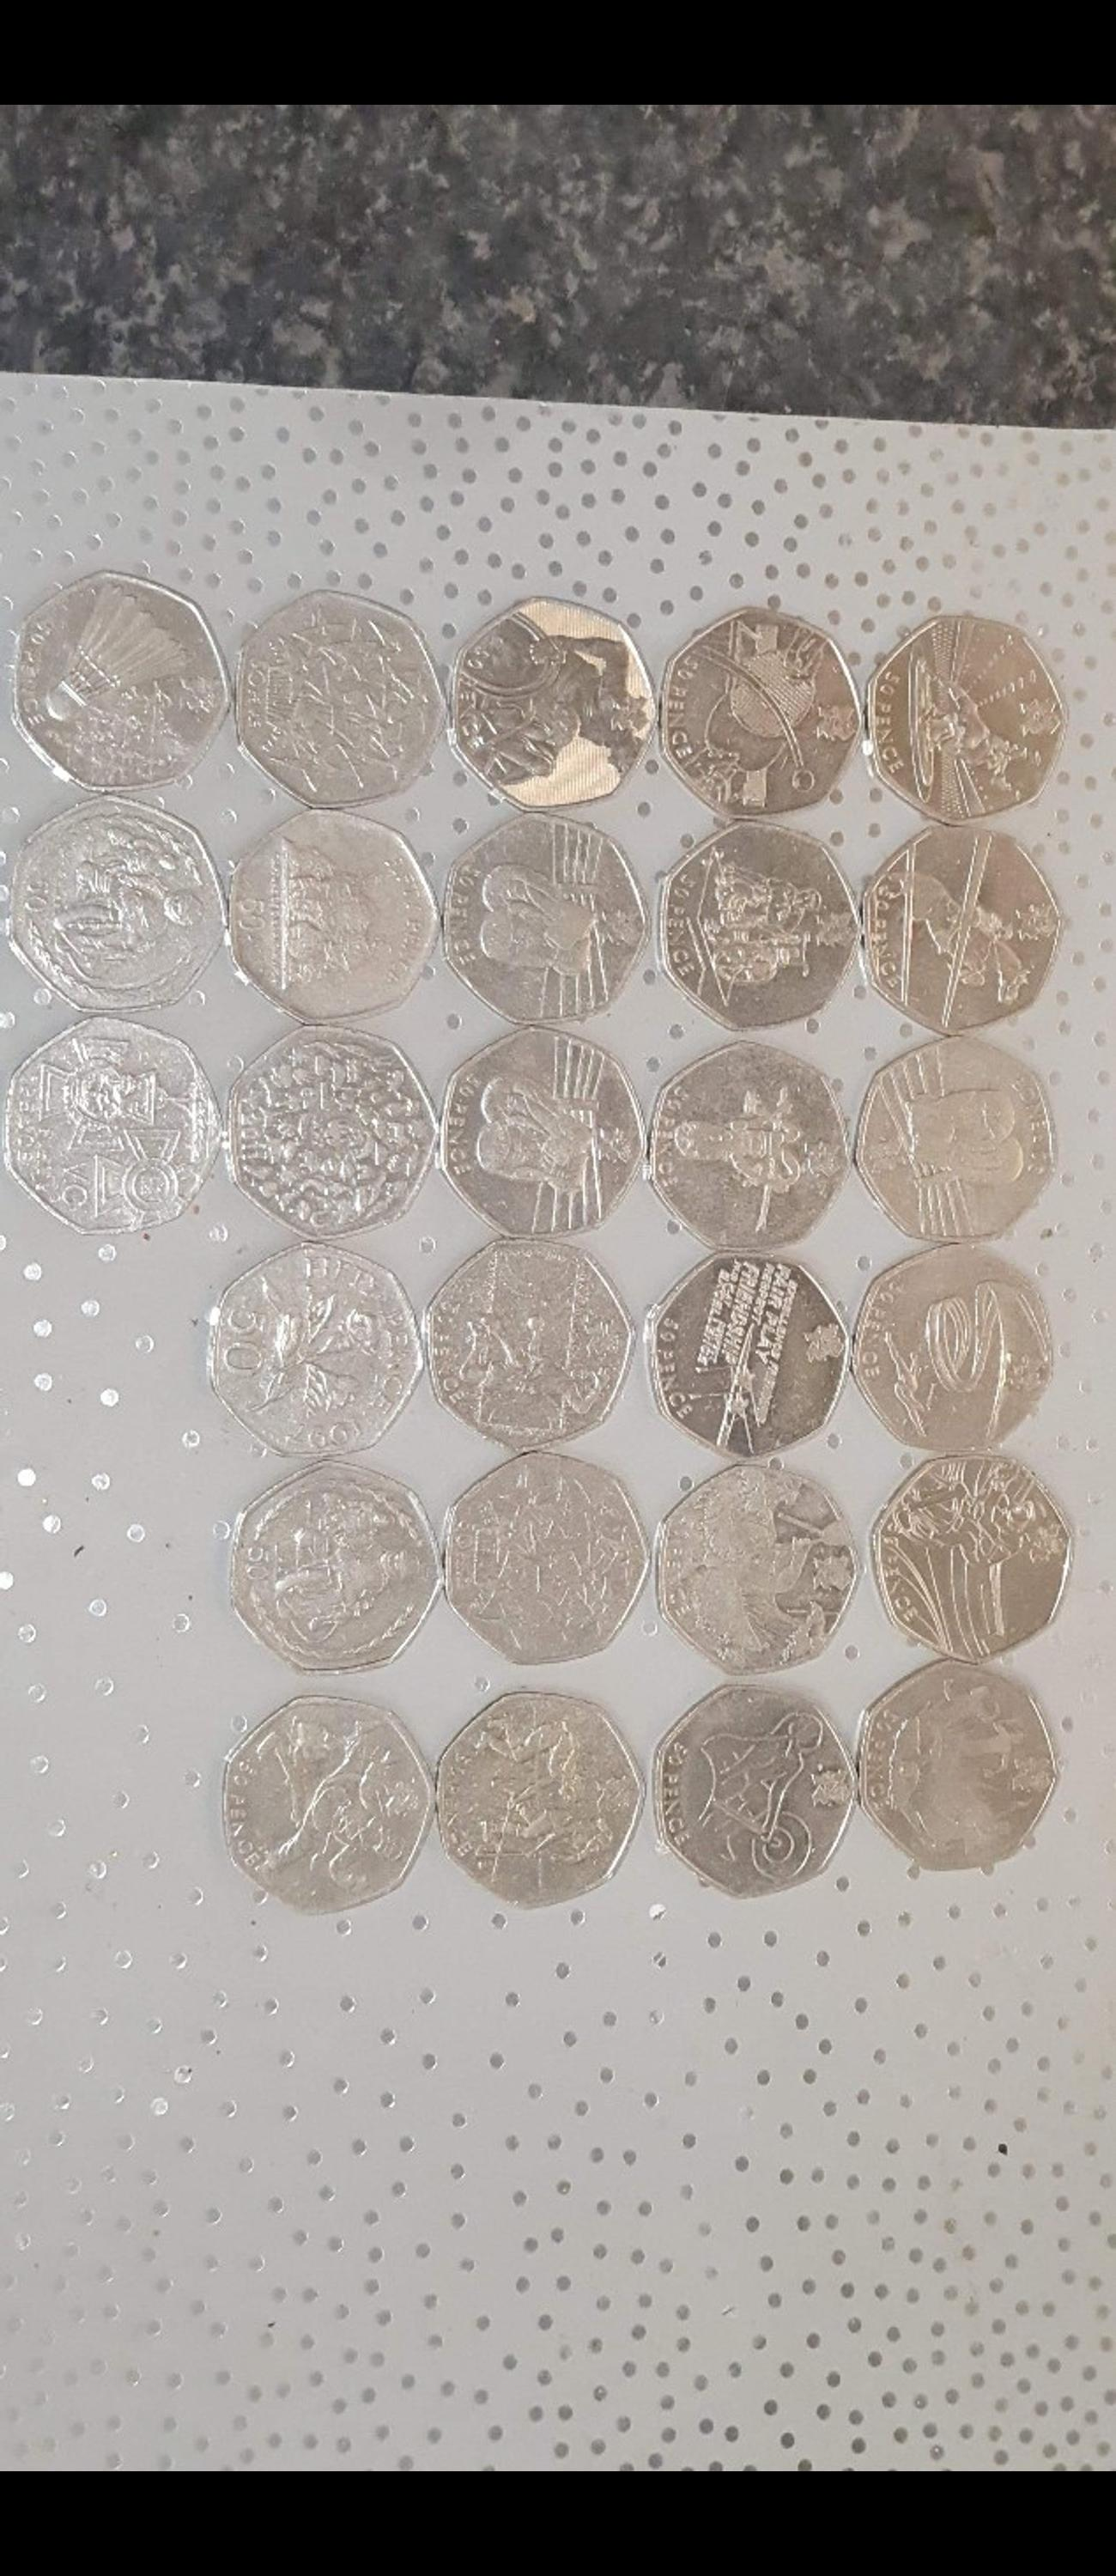 various 50ps all rare and hard to find